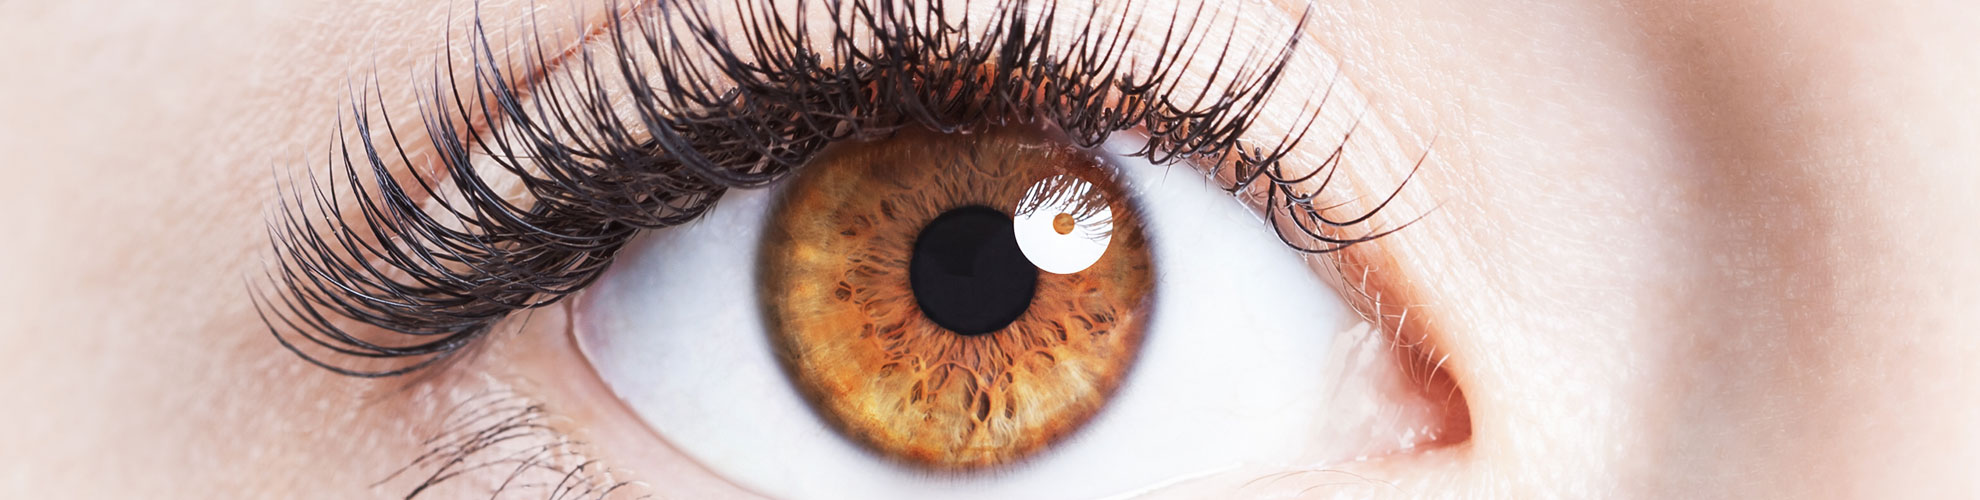 Introduction to the Eye - Longview Eye and Vision